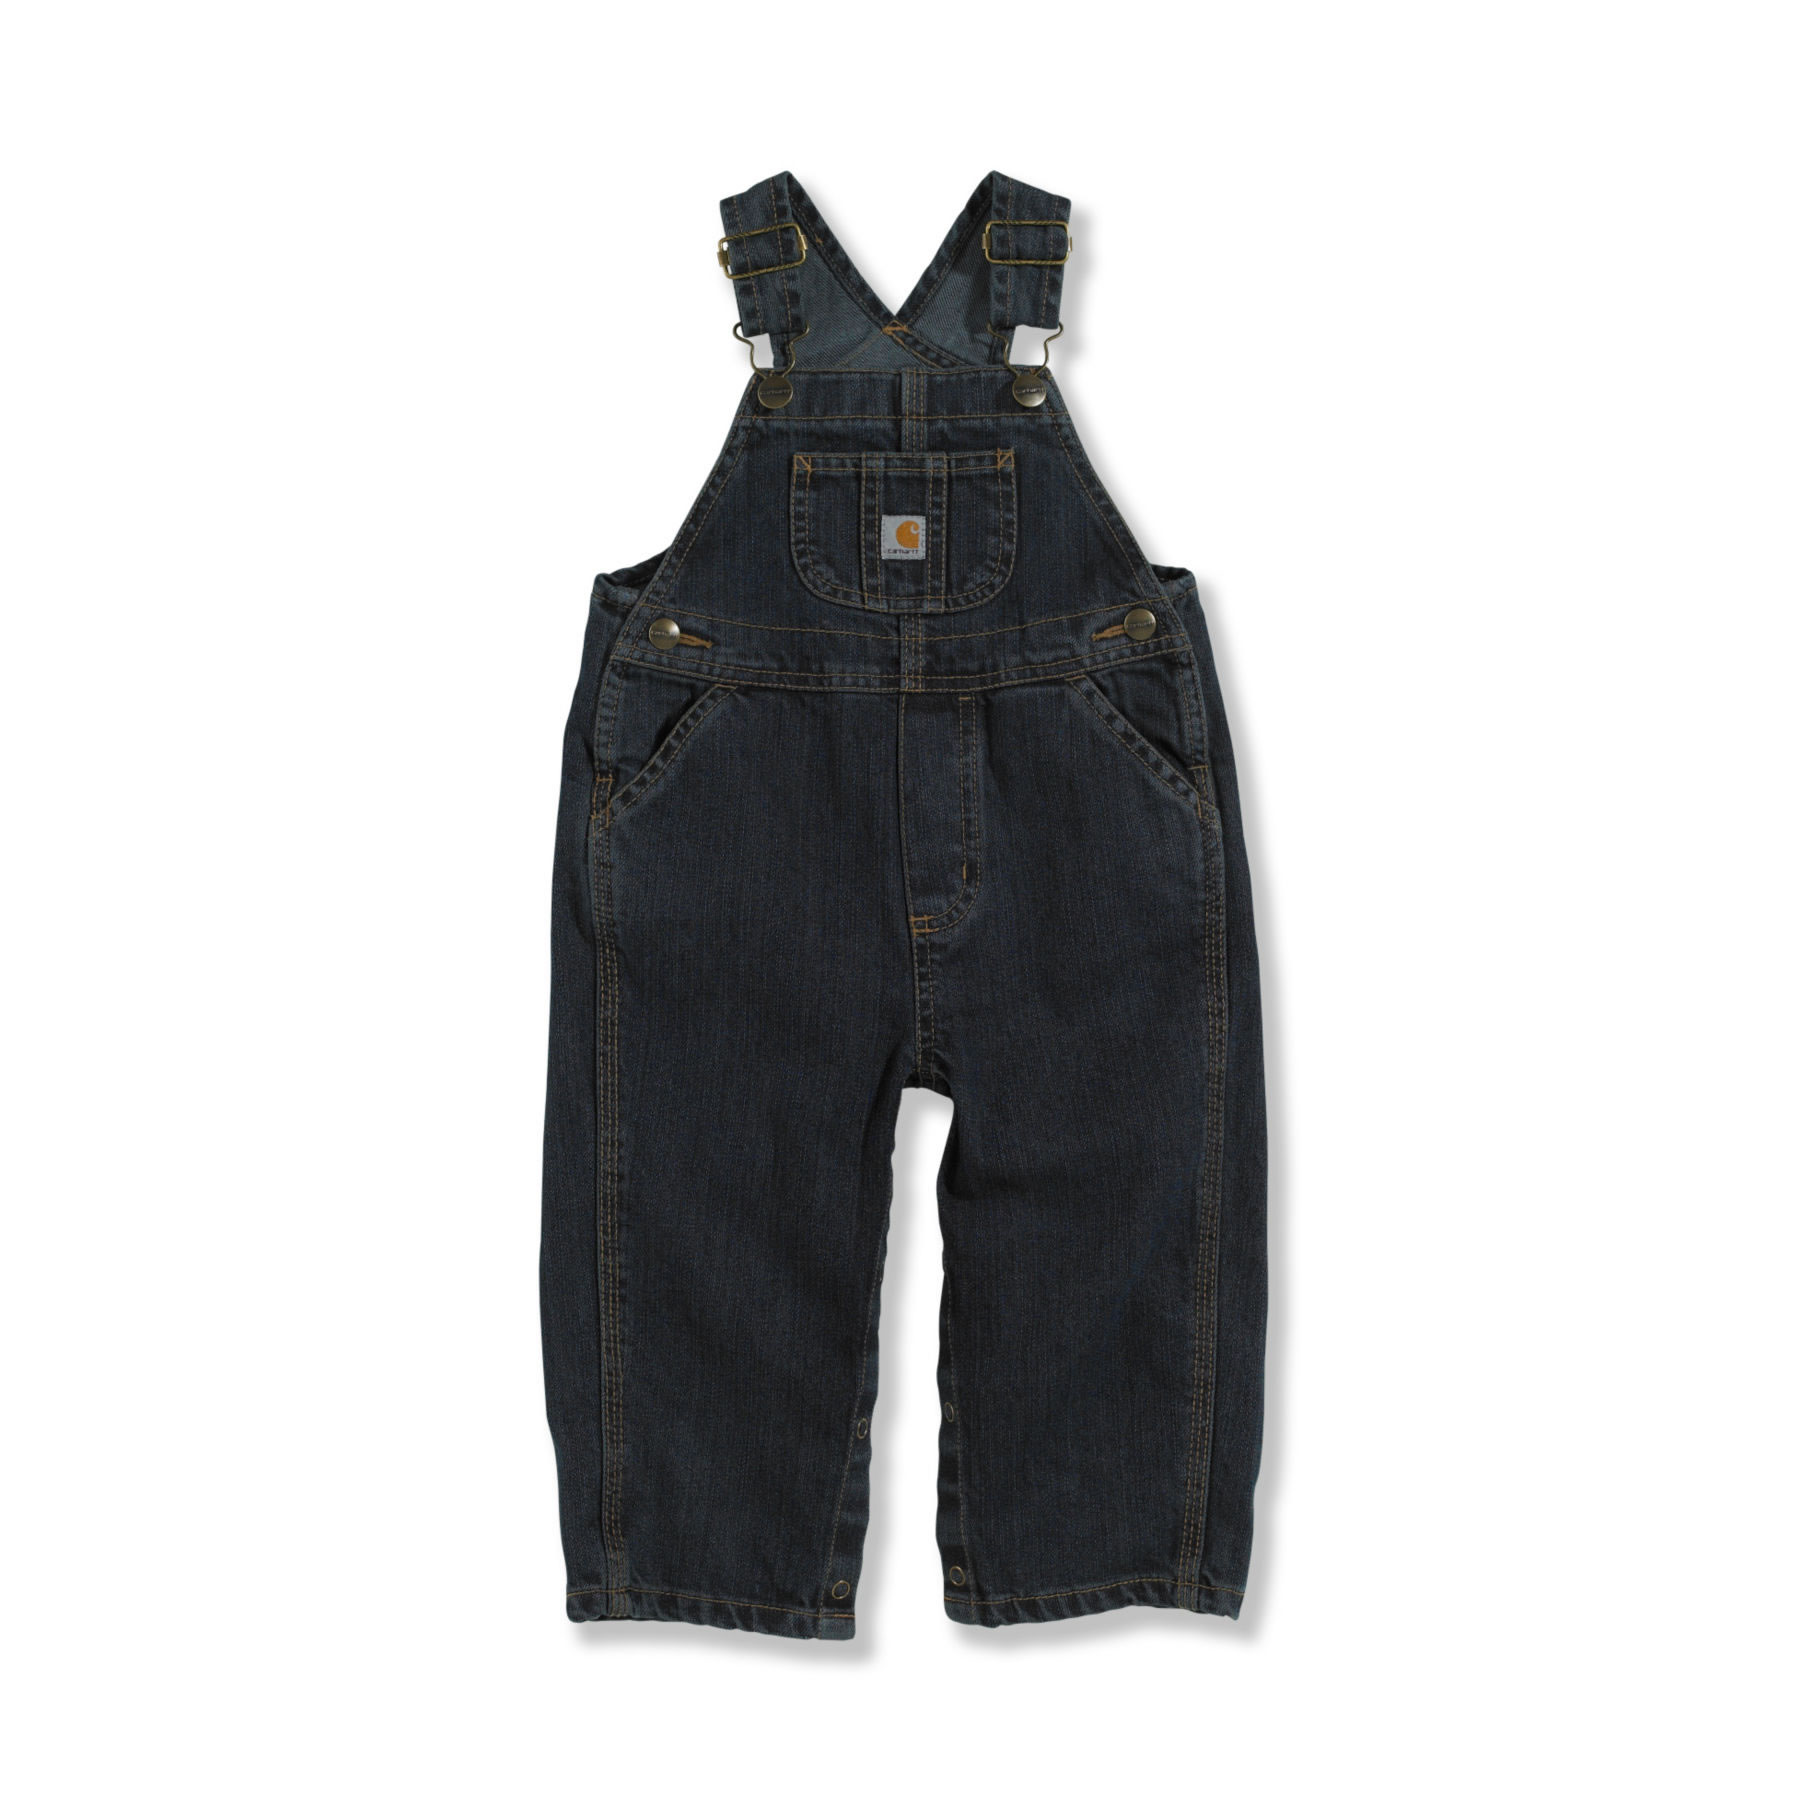 Find great deals on eBay for baby bib overalls. Shop with confidence.